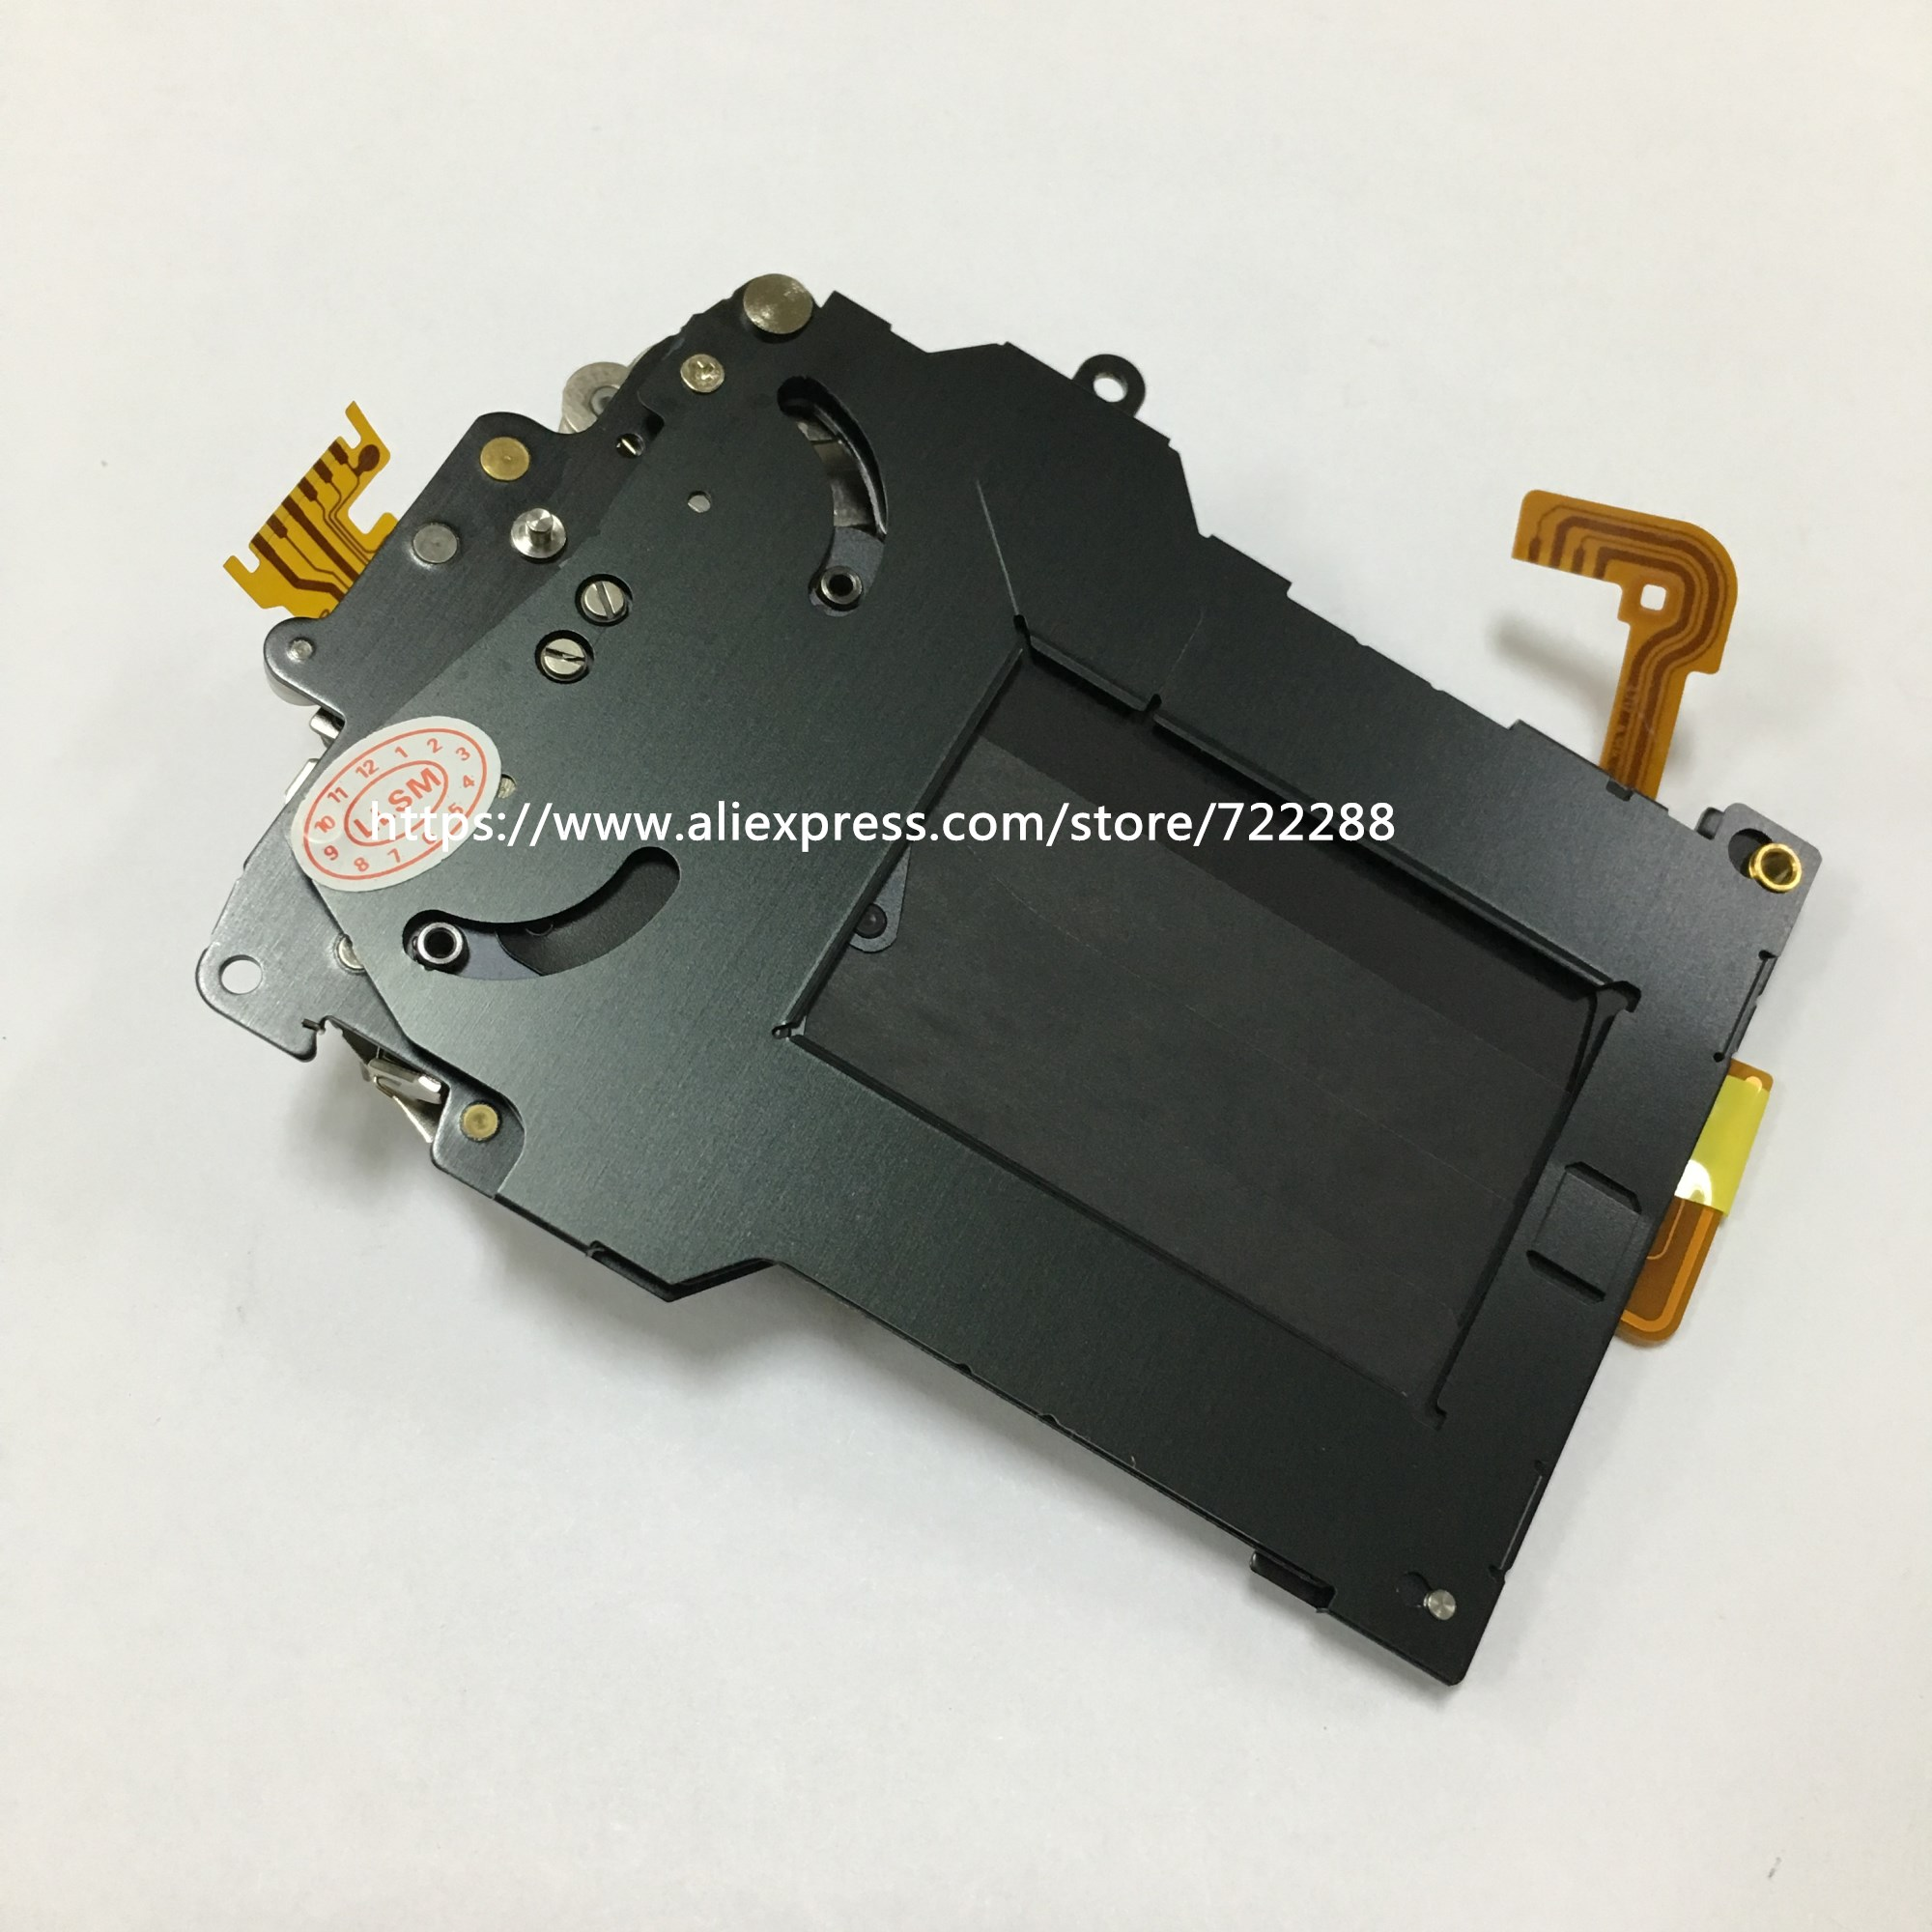 Image 3 - Repair Parts For Nikon D3S Shutter Group Assy With Shutter Curtain Unit 1B061 199-in Electronics Stocks from Electronic Components & Supplies